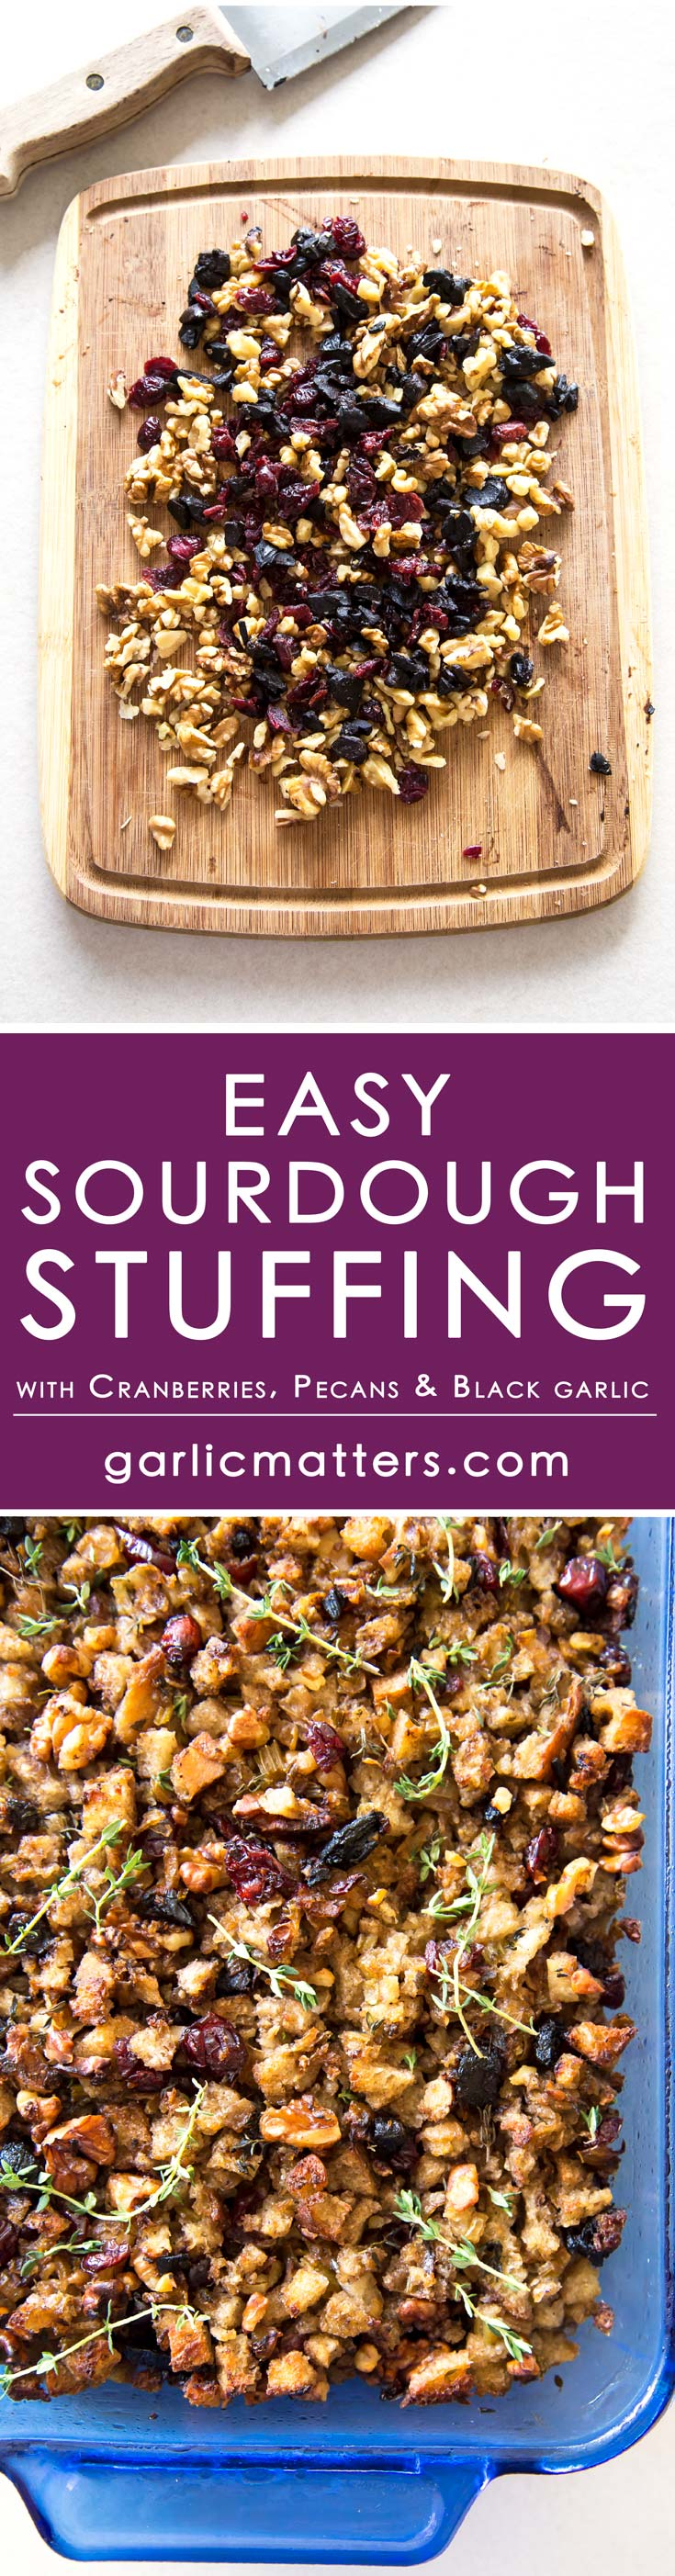 This easy, homemade sourdough stuffing recipe includes sourdough, black garlic, nuts and cranberries. This is hands down the best stuffing I've ever had - I like to serve it as a stand-alone side dish. Combination of sweet, savoury and earthy ingredients make it an excellent stuffing for turkey or any other meat. It has rich flavour and lovely texture, and also thanks to the antioxidant rich black garlic addition, fantastic health benefits!